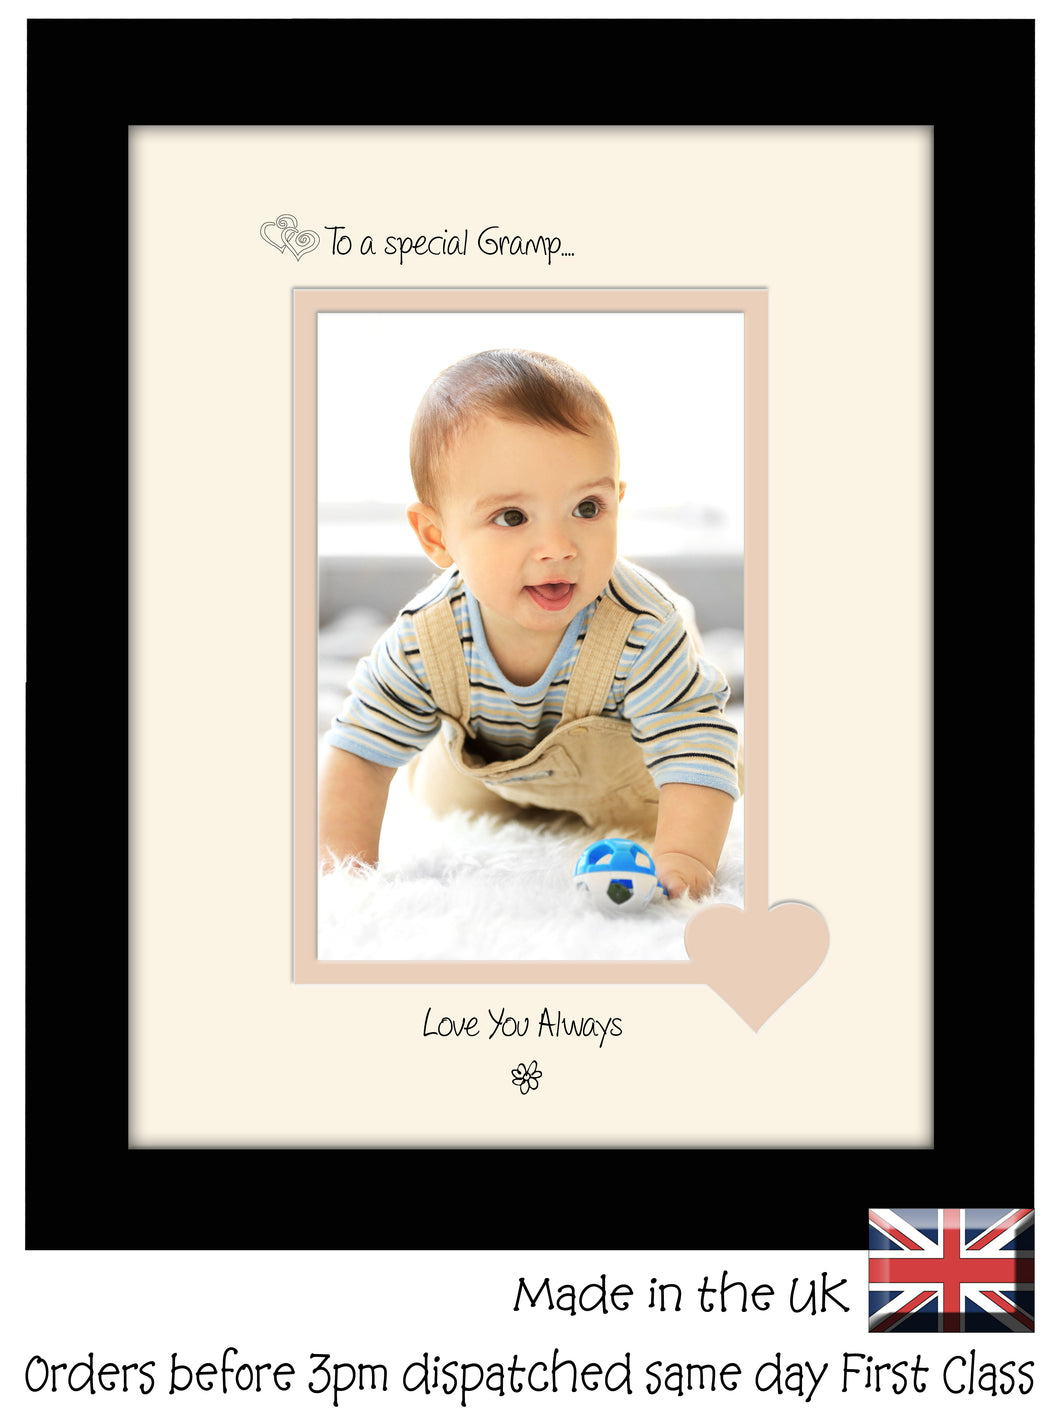 Gramp Photo Frame - To a Special Gramp ... Love you Always Portrait photo frame 6